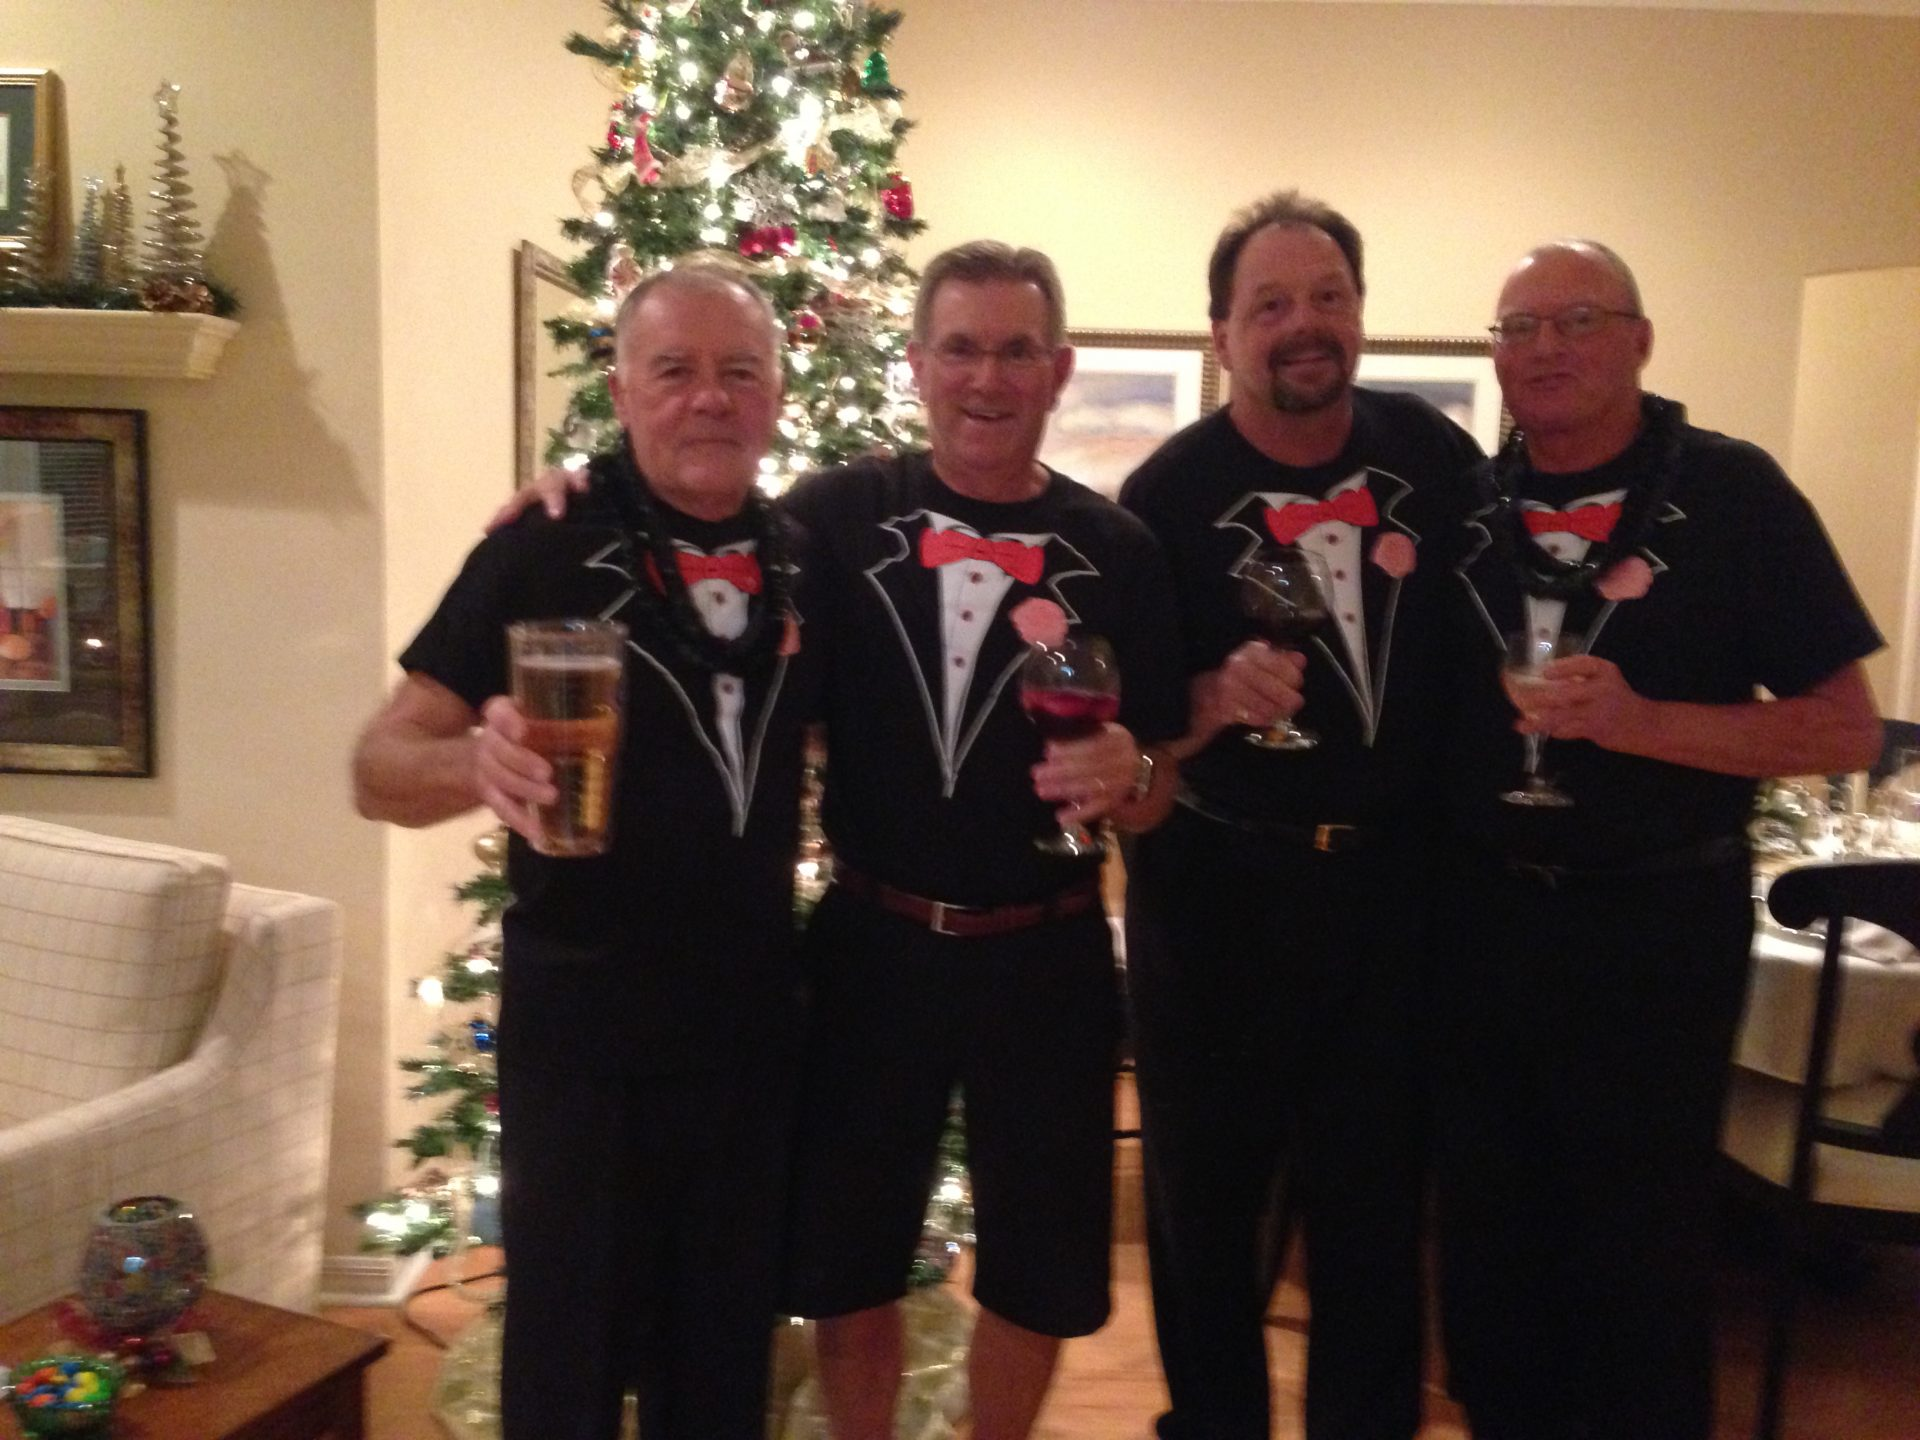 The four amigos of Village of Piedmont celebrating New Year's Eve 2013. L-R Pat Murphy, Eric Ehlers, Michael Gavigan and Bob Vogel.